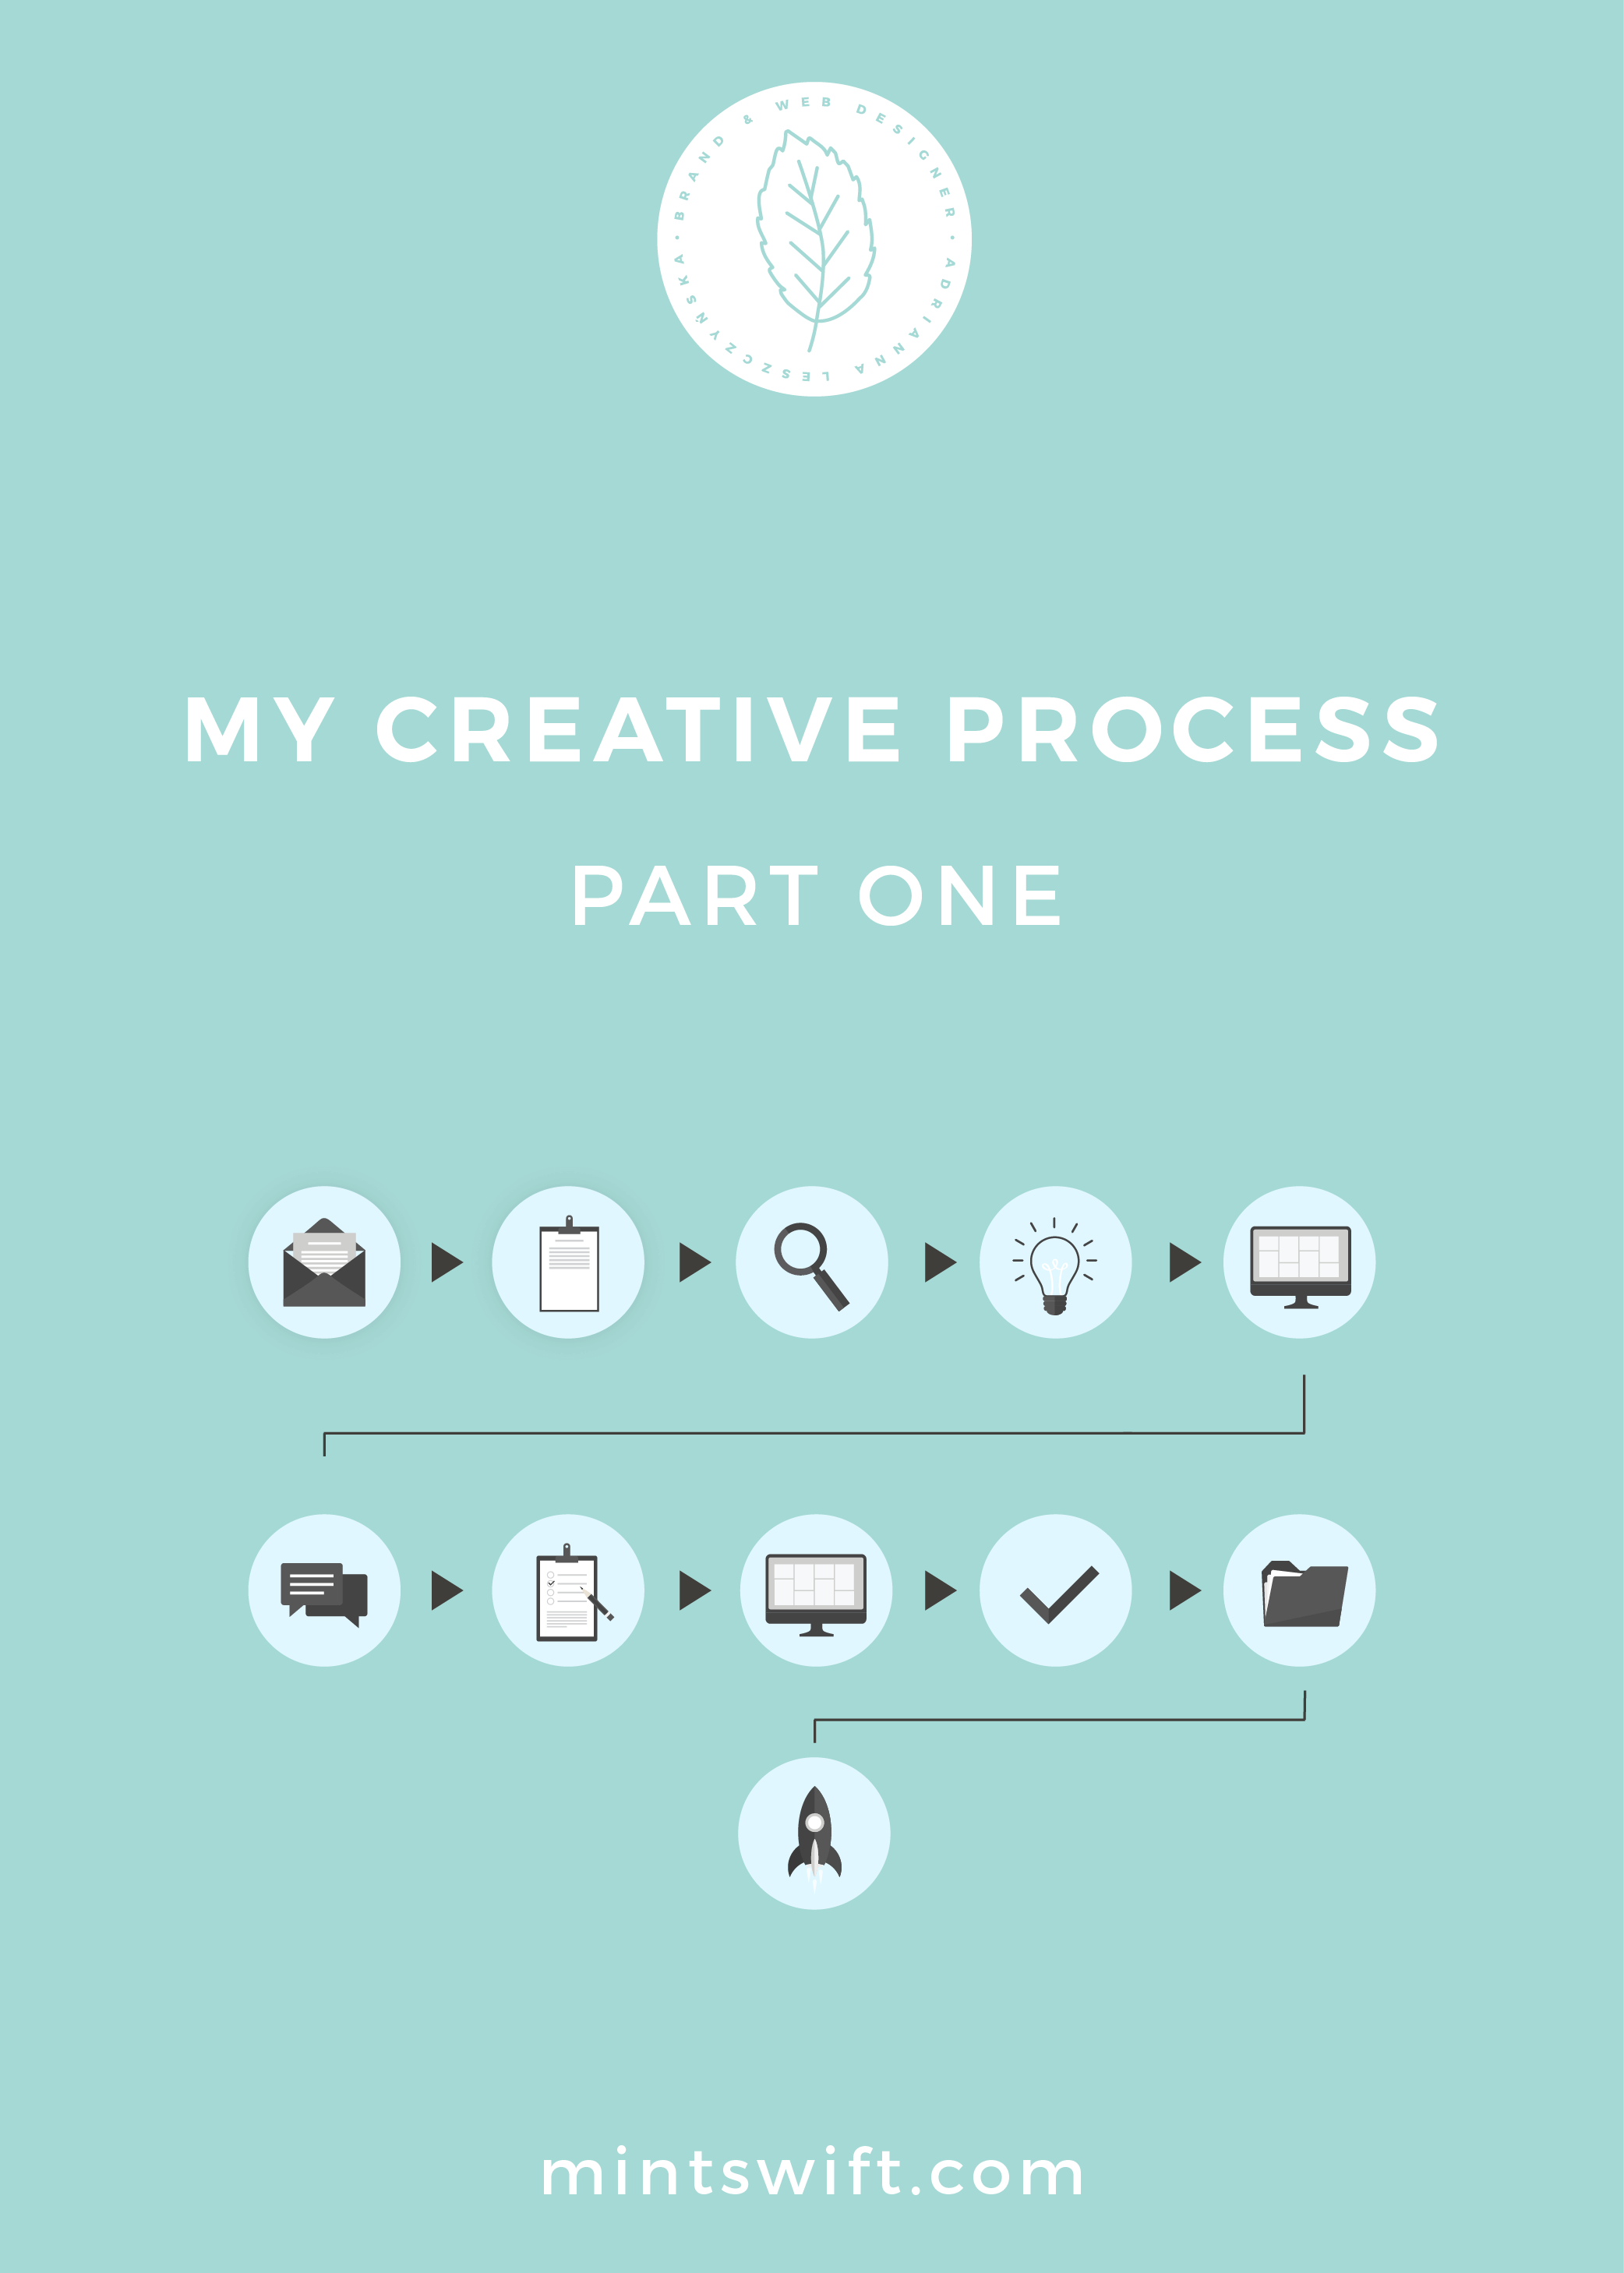 My Creative Process Part One - MintSwift